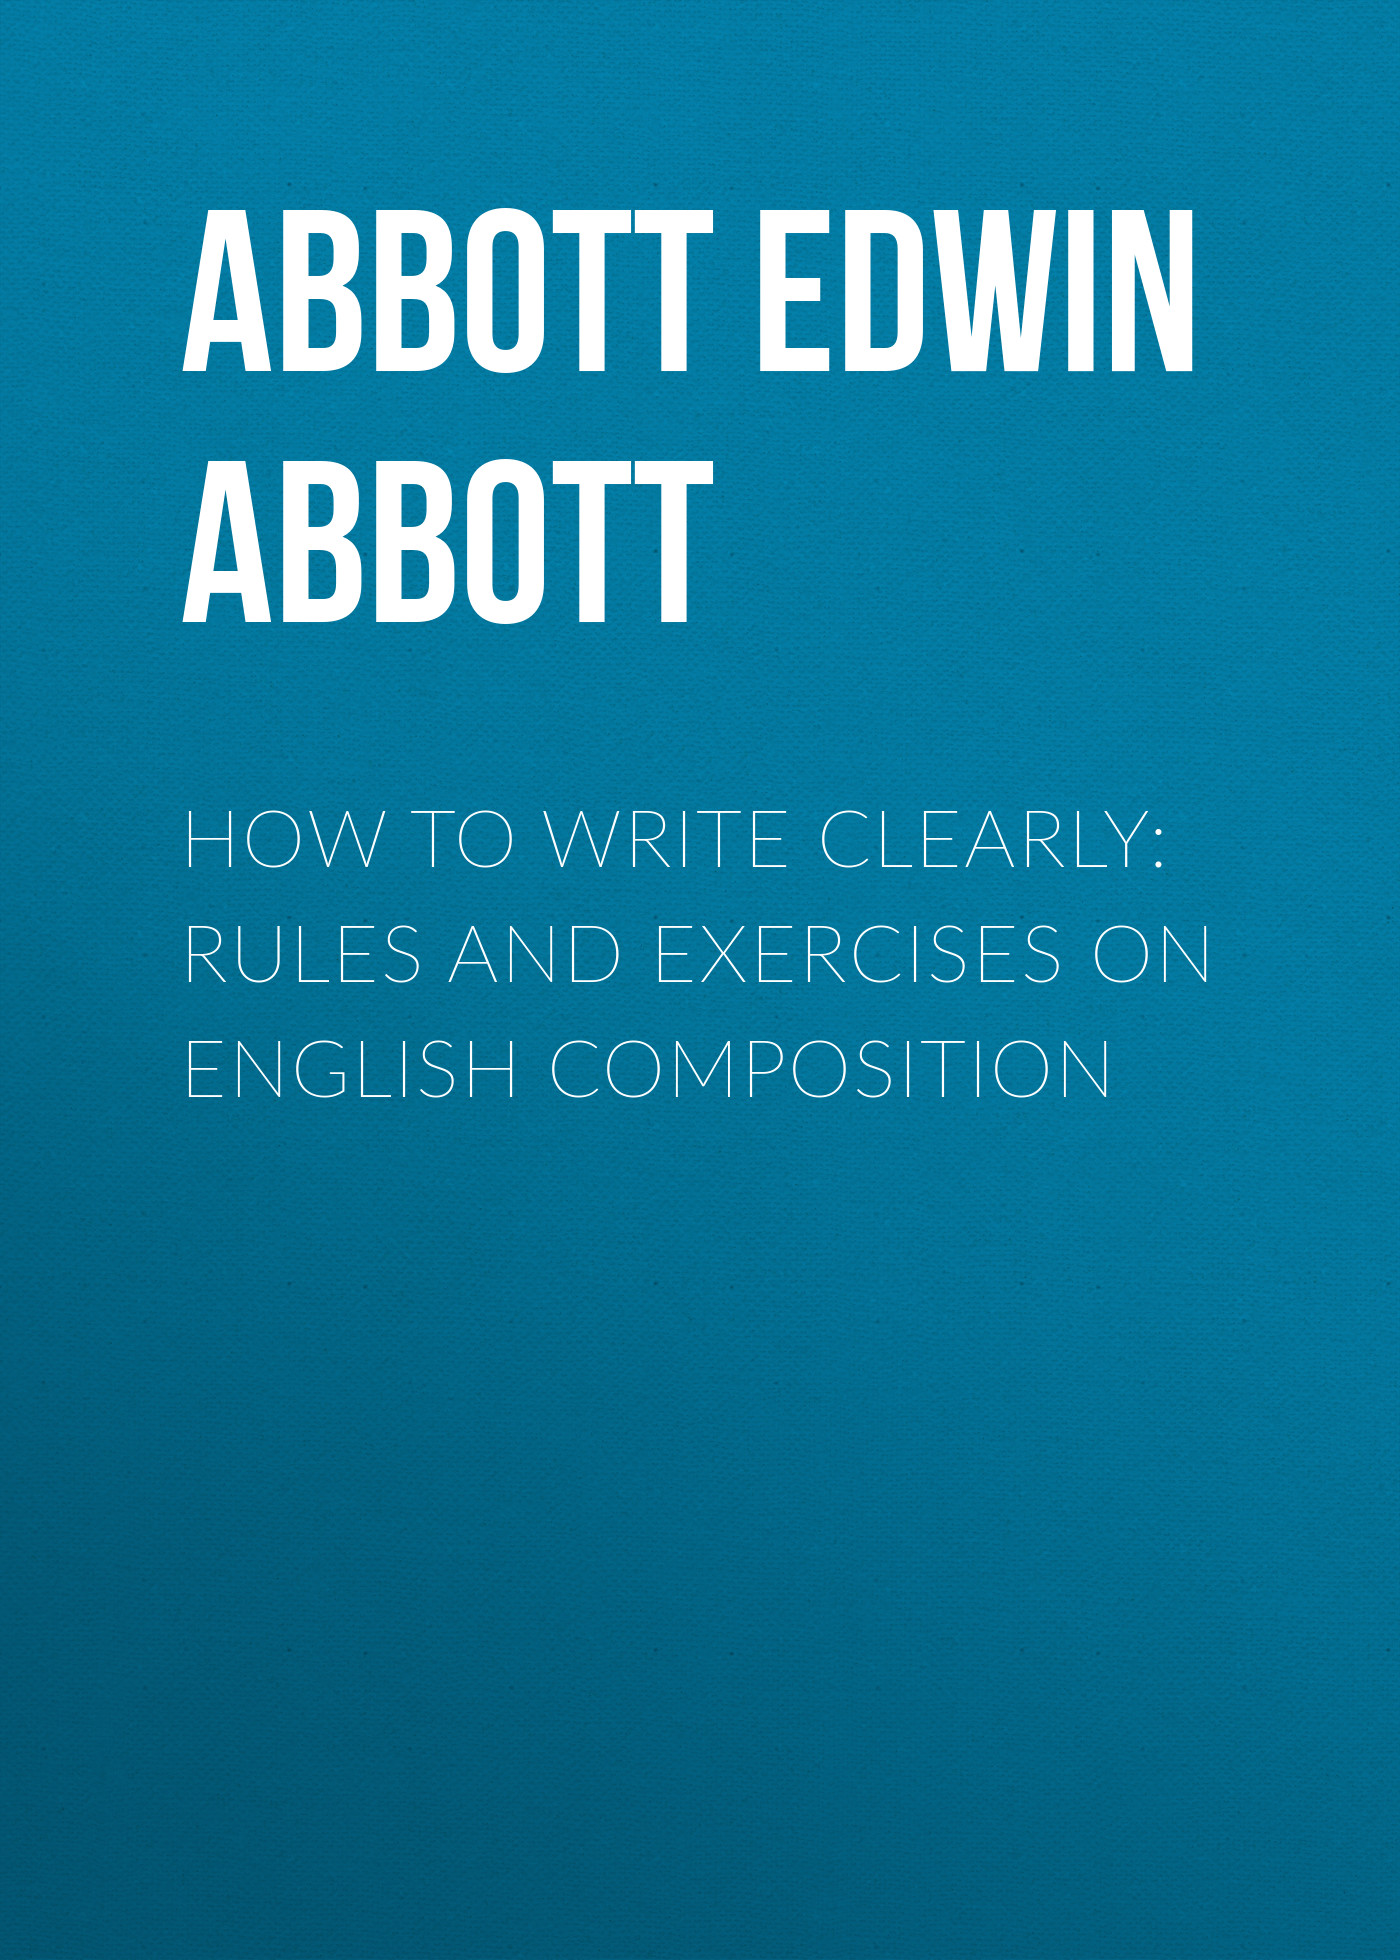 Abbott Edwin Abbott How to Write Clearly: Rules and Exercises on English Composition rachel abbott maga hästi